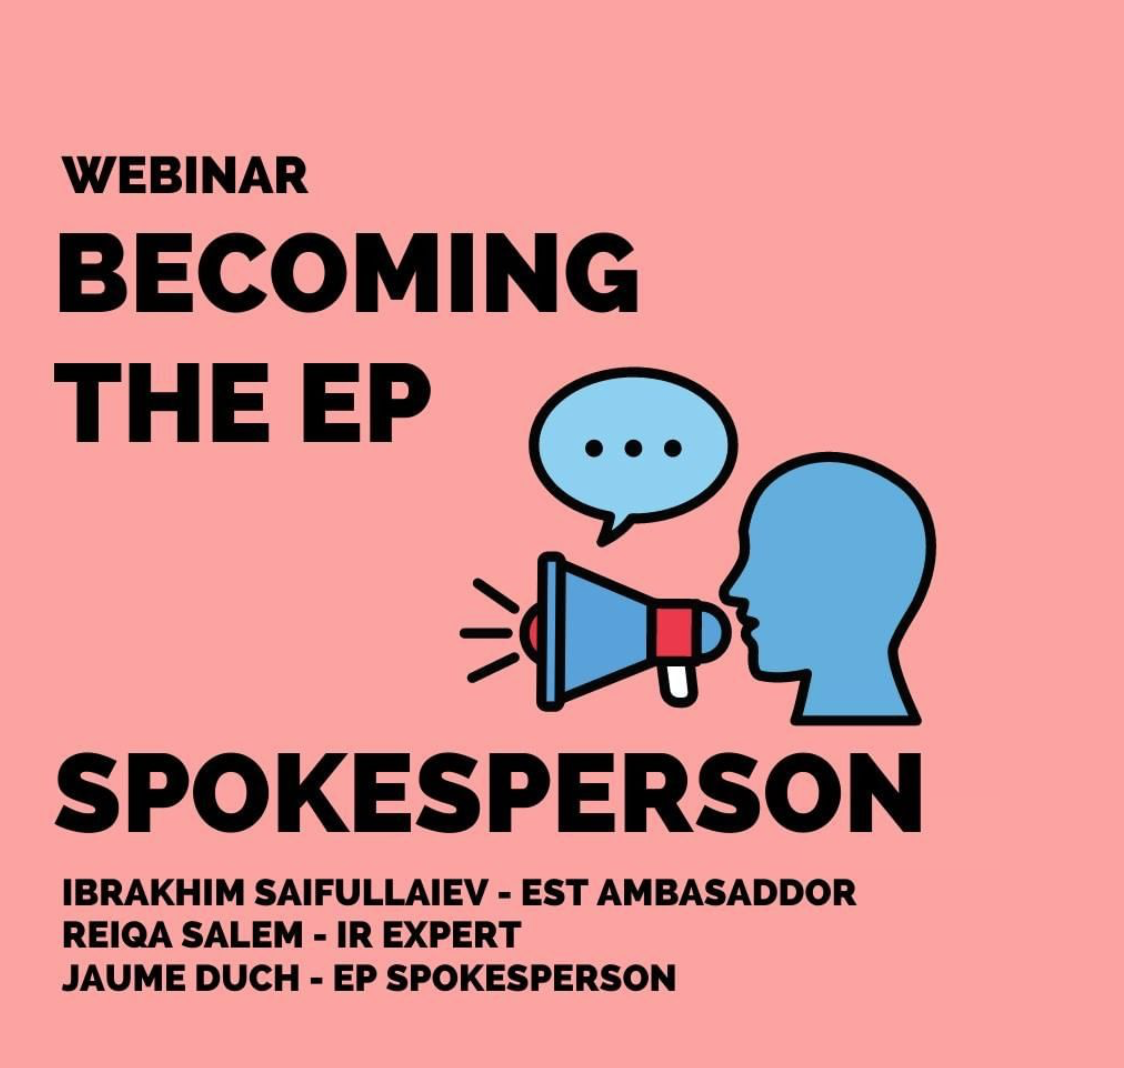 Becoming the EP Spokesperson Poster